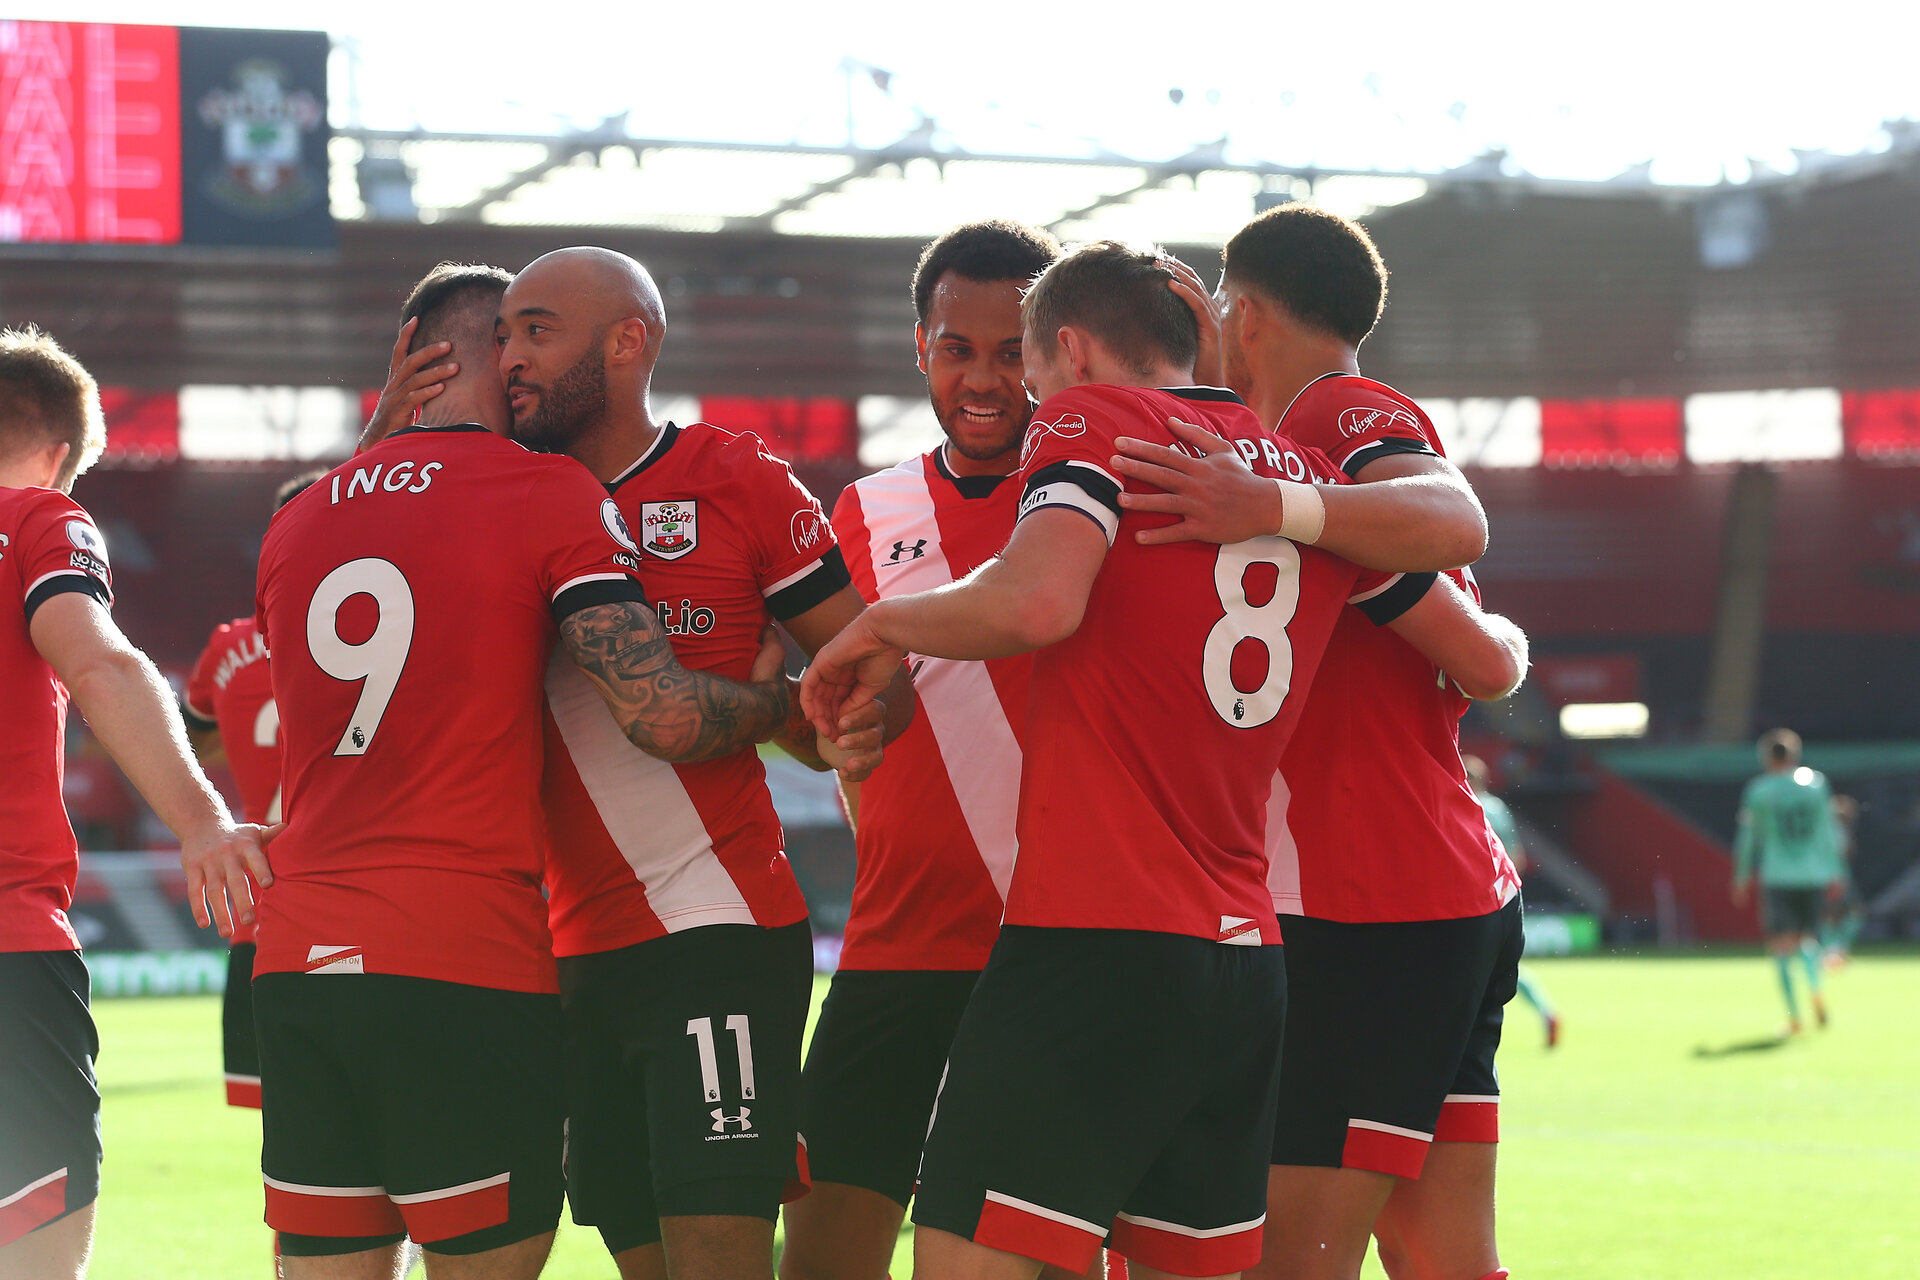 SOUTHAMPTON, ENGLAND - OCTOBER 25: Southampton players congratulate James Ward-Prowse of Southampton on his goal  during the Premier League match between Southampton and Everton at St Mary's Stadium on October 25, 2020 in Southampton, England. Sporting stadiums around the UK remain under strict restrictions due to the Coronavirus Pandemic as Government social distancing laws prohibit fans inside venues resulting in games being played behind closed doors. (Photo by Matt Watson/Southampton FC via Getty Images)